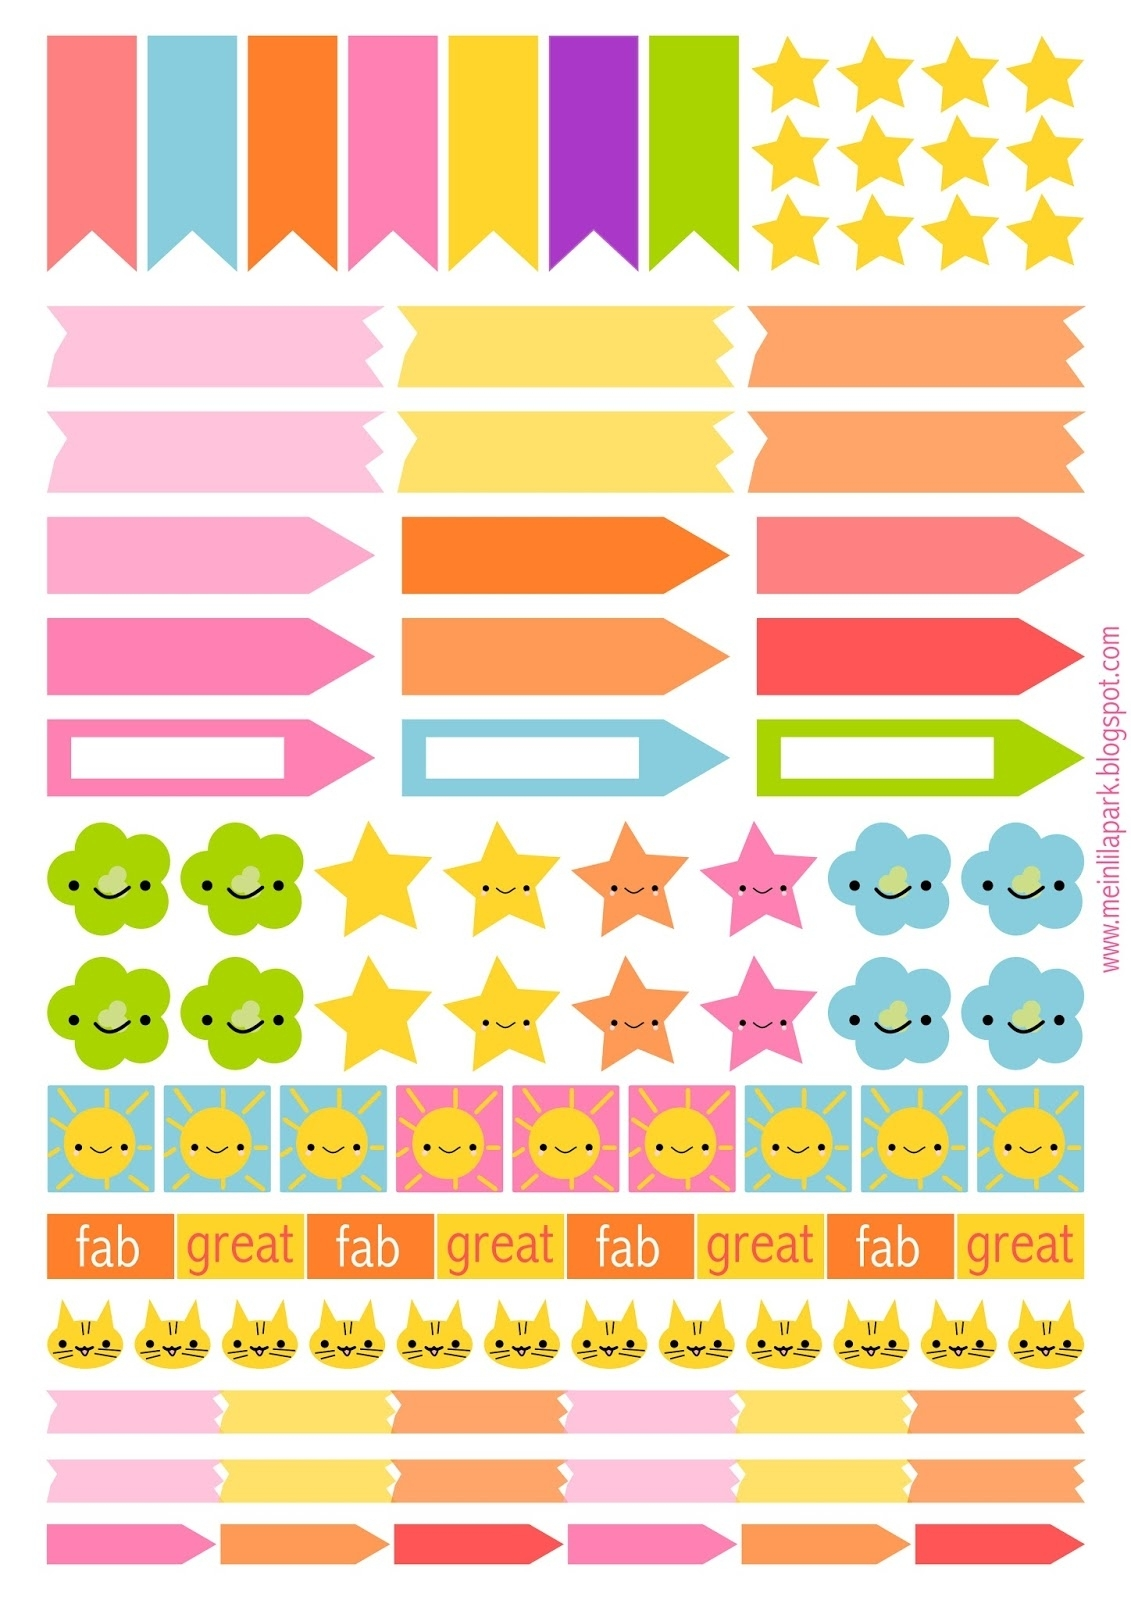 Free Printable Planner Flags And Stickers - Ausdruckbare